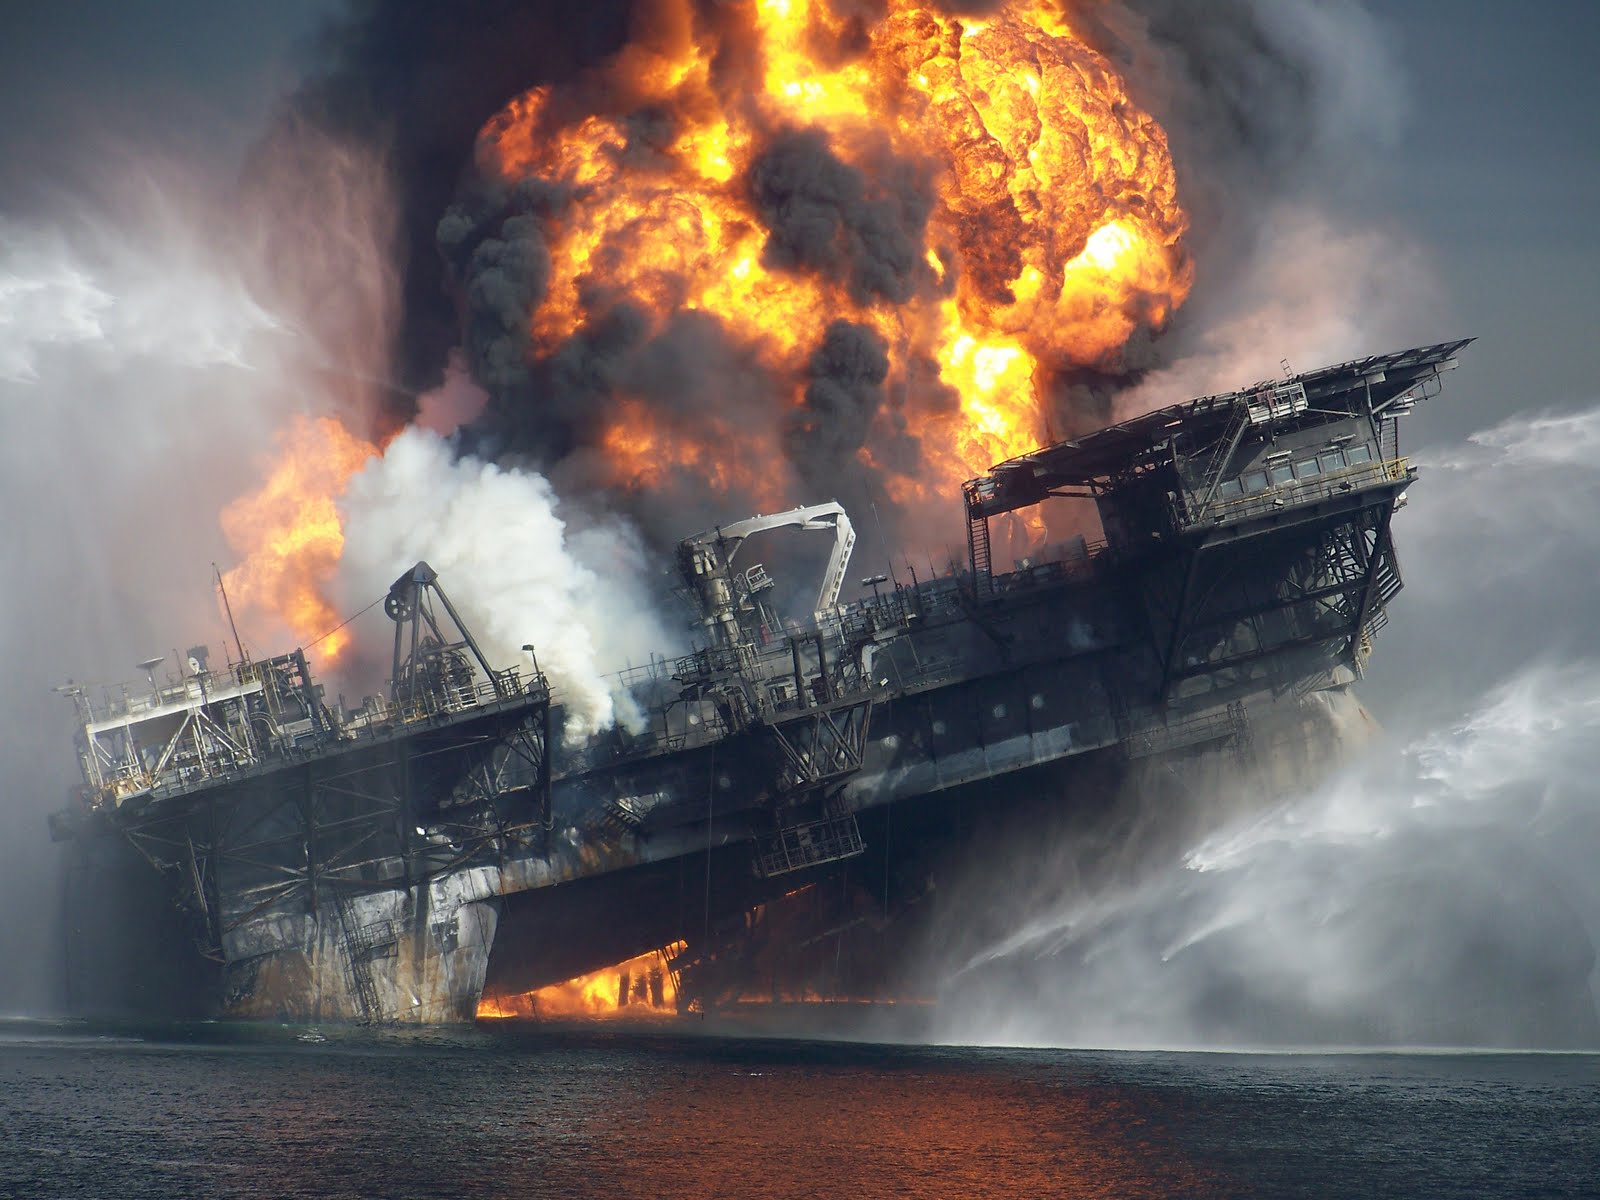 case study faulty decision making is a cause of the deepwater horizon disaster Deepwater horizon accident investigation report executive summary eight key findings related to the causes of the accident emerged these findings are briefly.